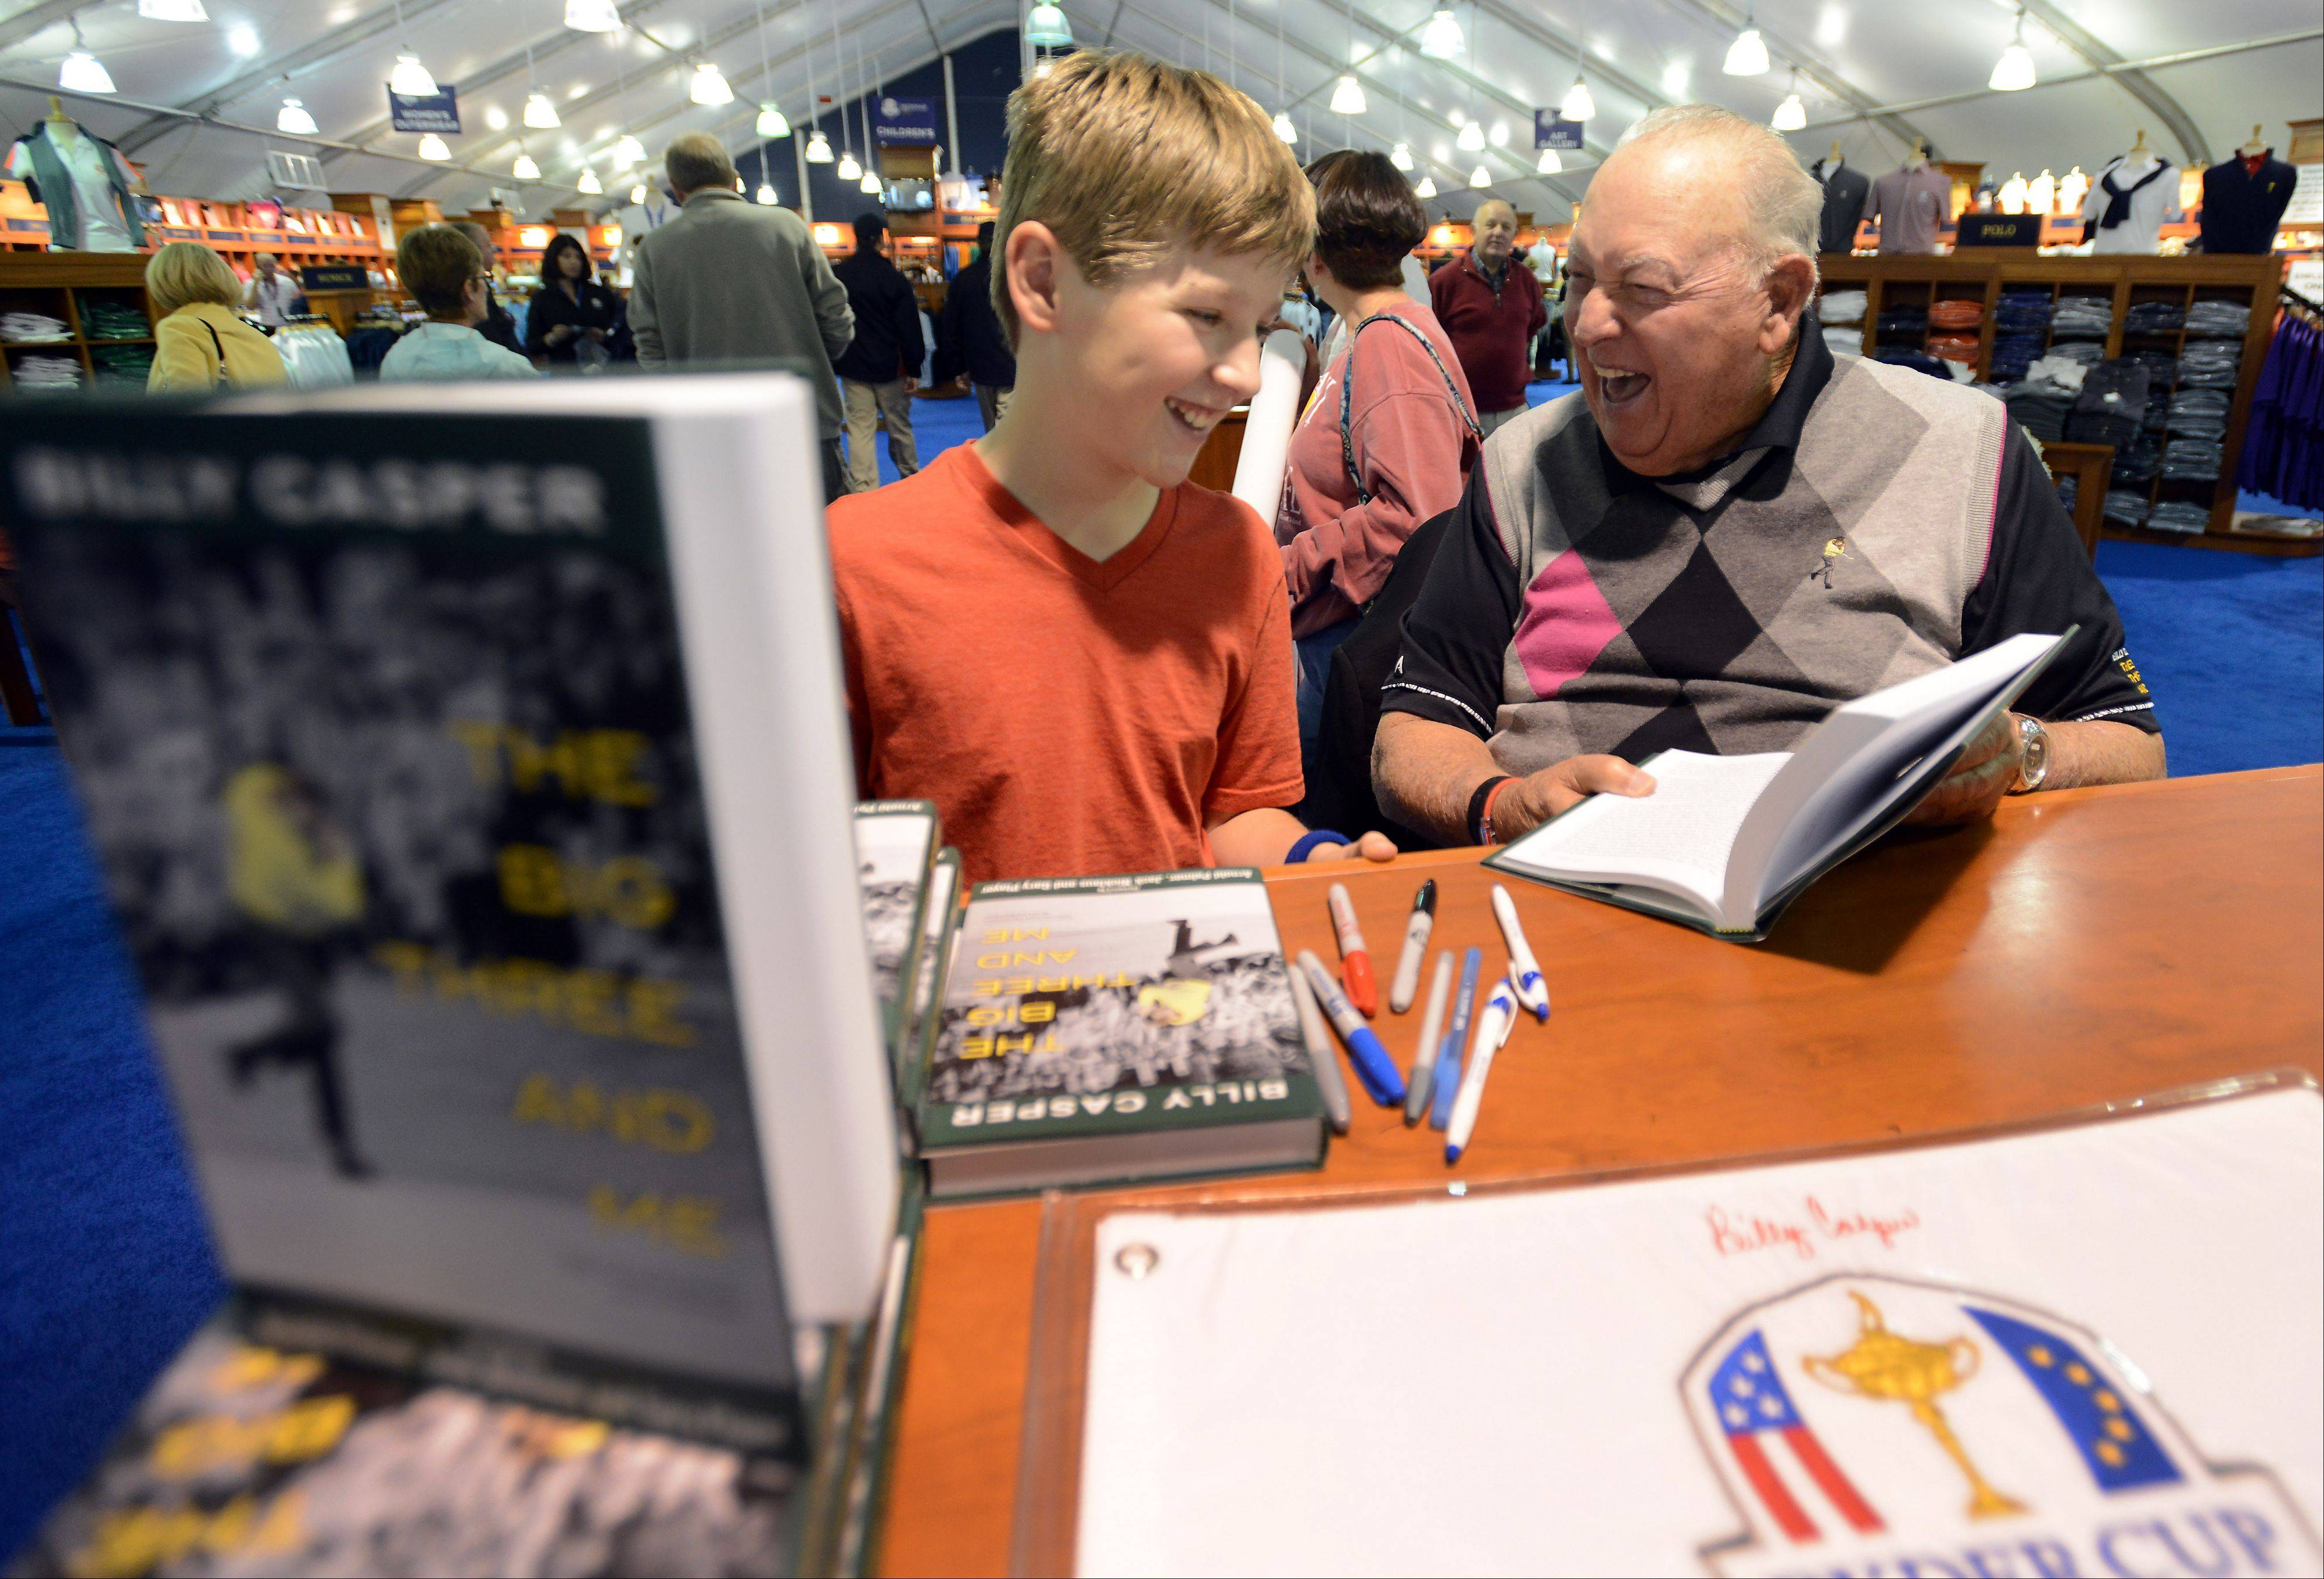 Hunter Wark,11, of Glen Ellyn shares a laugh with World Golf Hall of Famer Billy Casper as he signs his book for him at the Ryder Cup golf pro shop on Sunday. Fans have flocked to the merchandise tent since it opened.